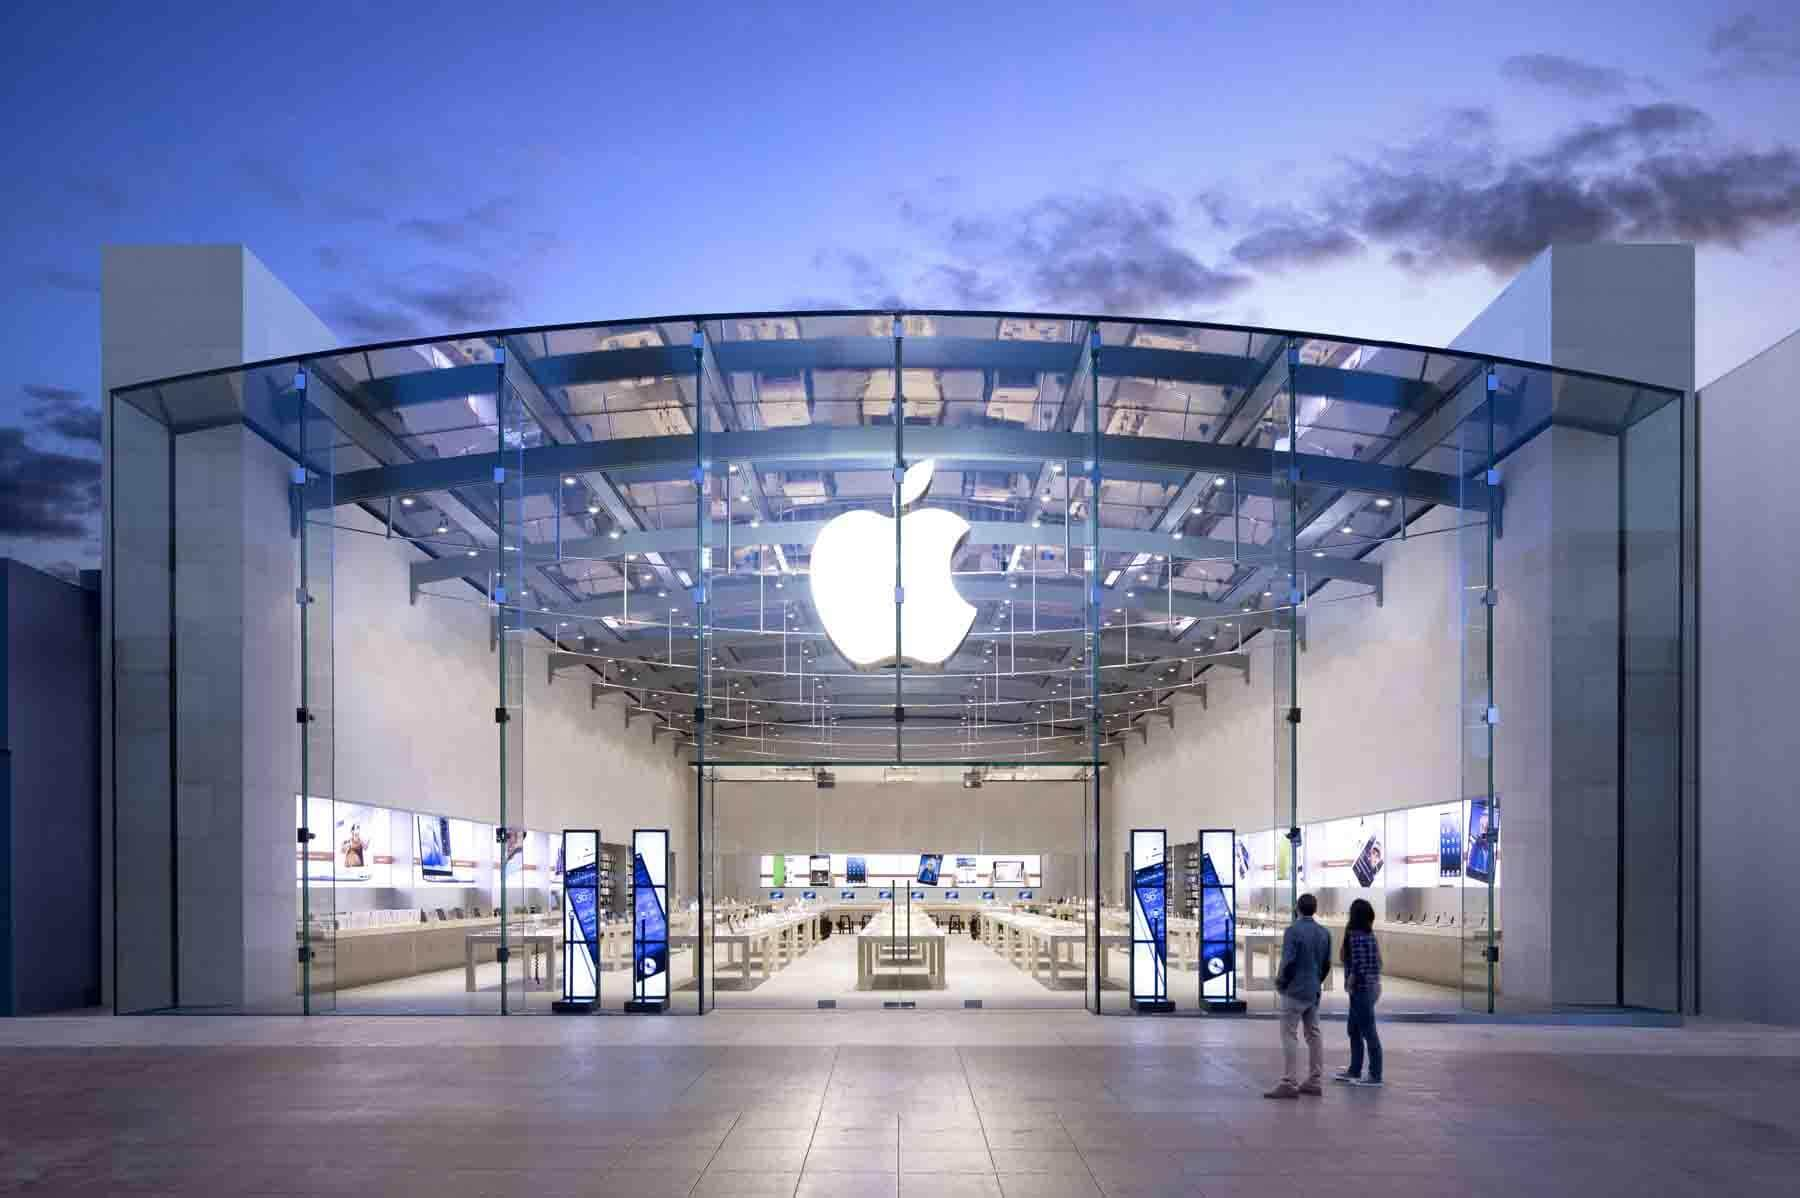 apple-store-3-magazasini-aciyor-1